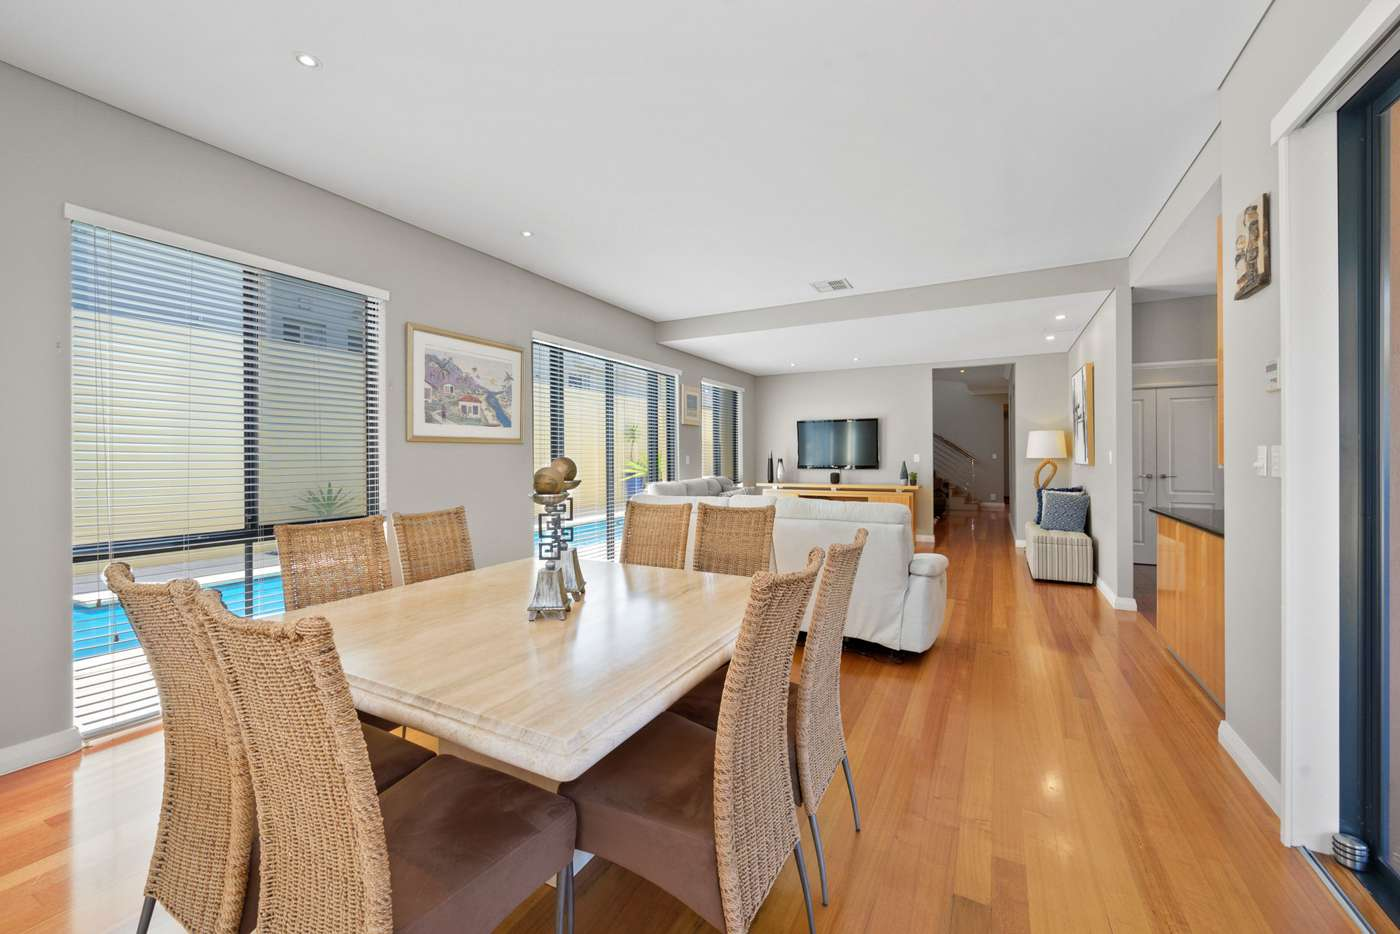 Seventh view of Homely house listing, 24 Frobisher Avenue, Sorrento WA 6020